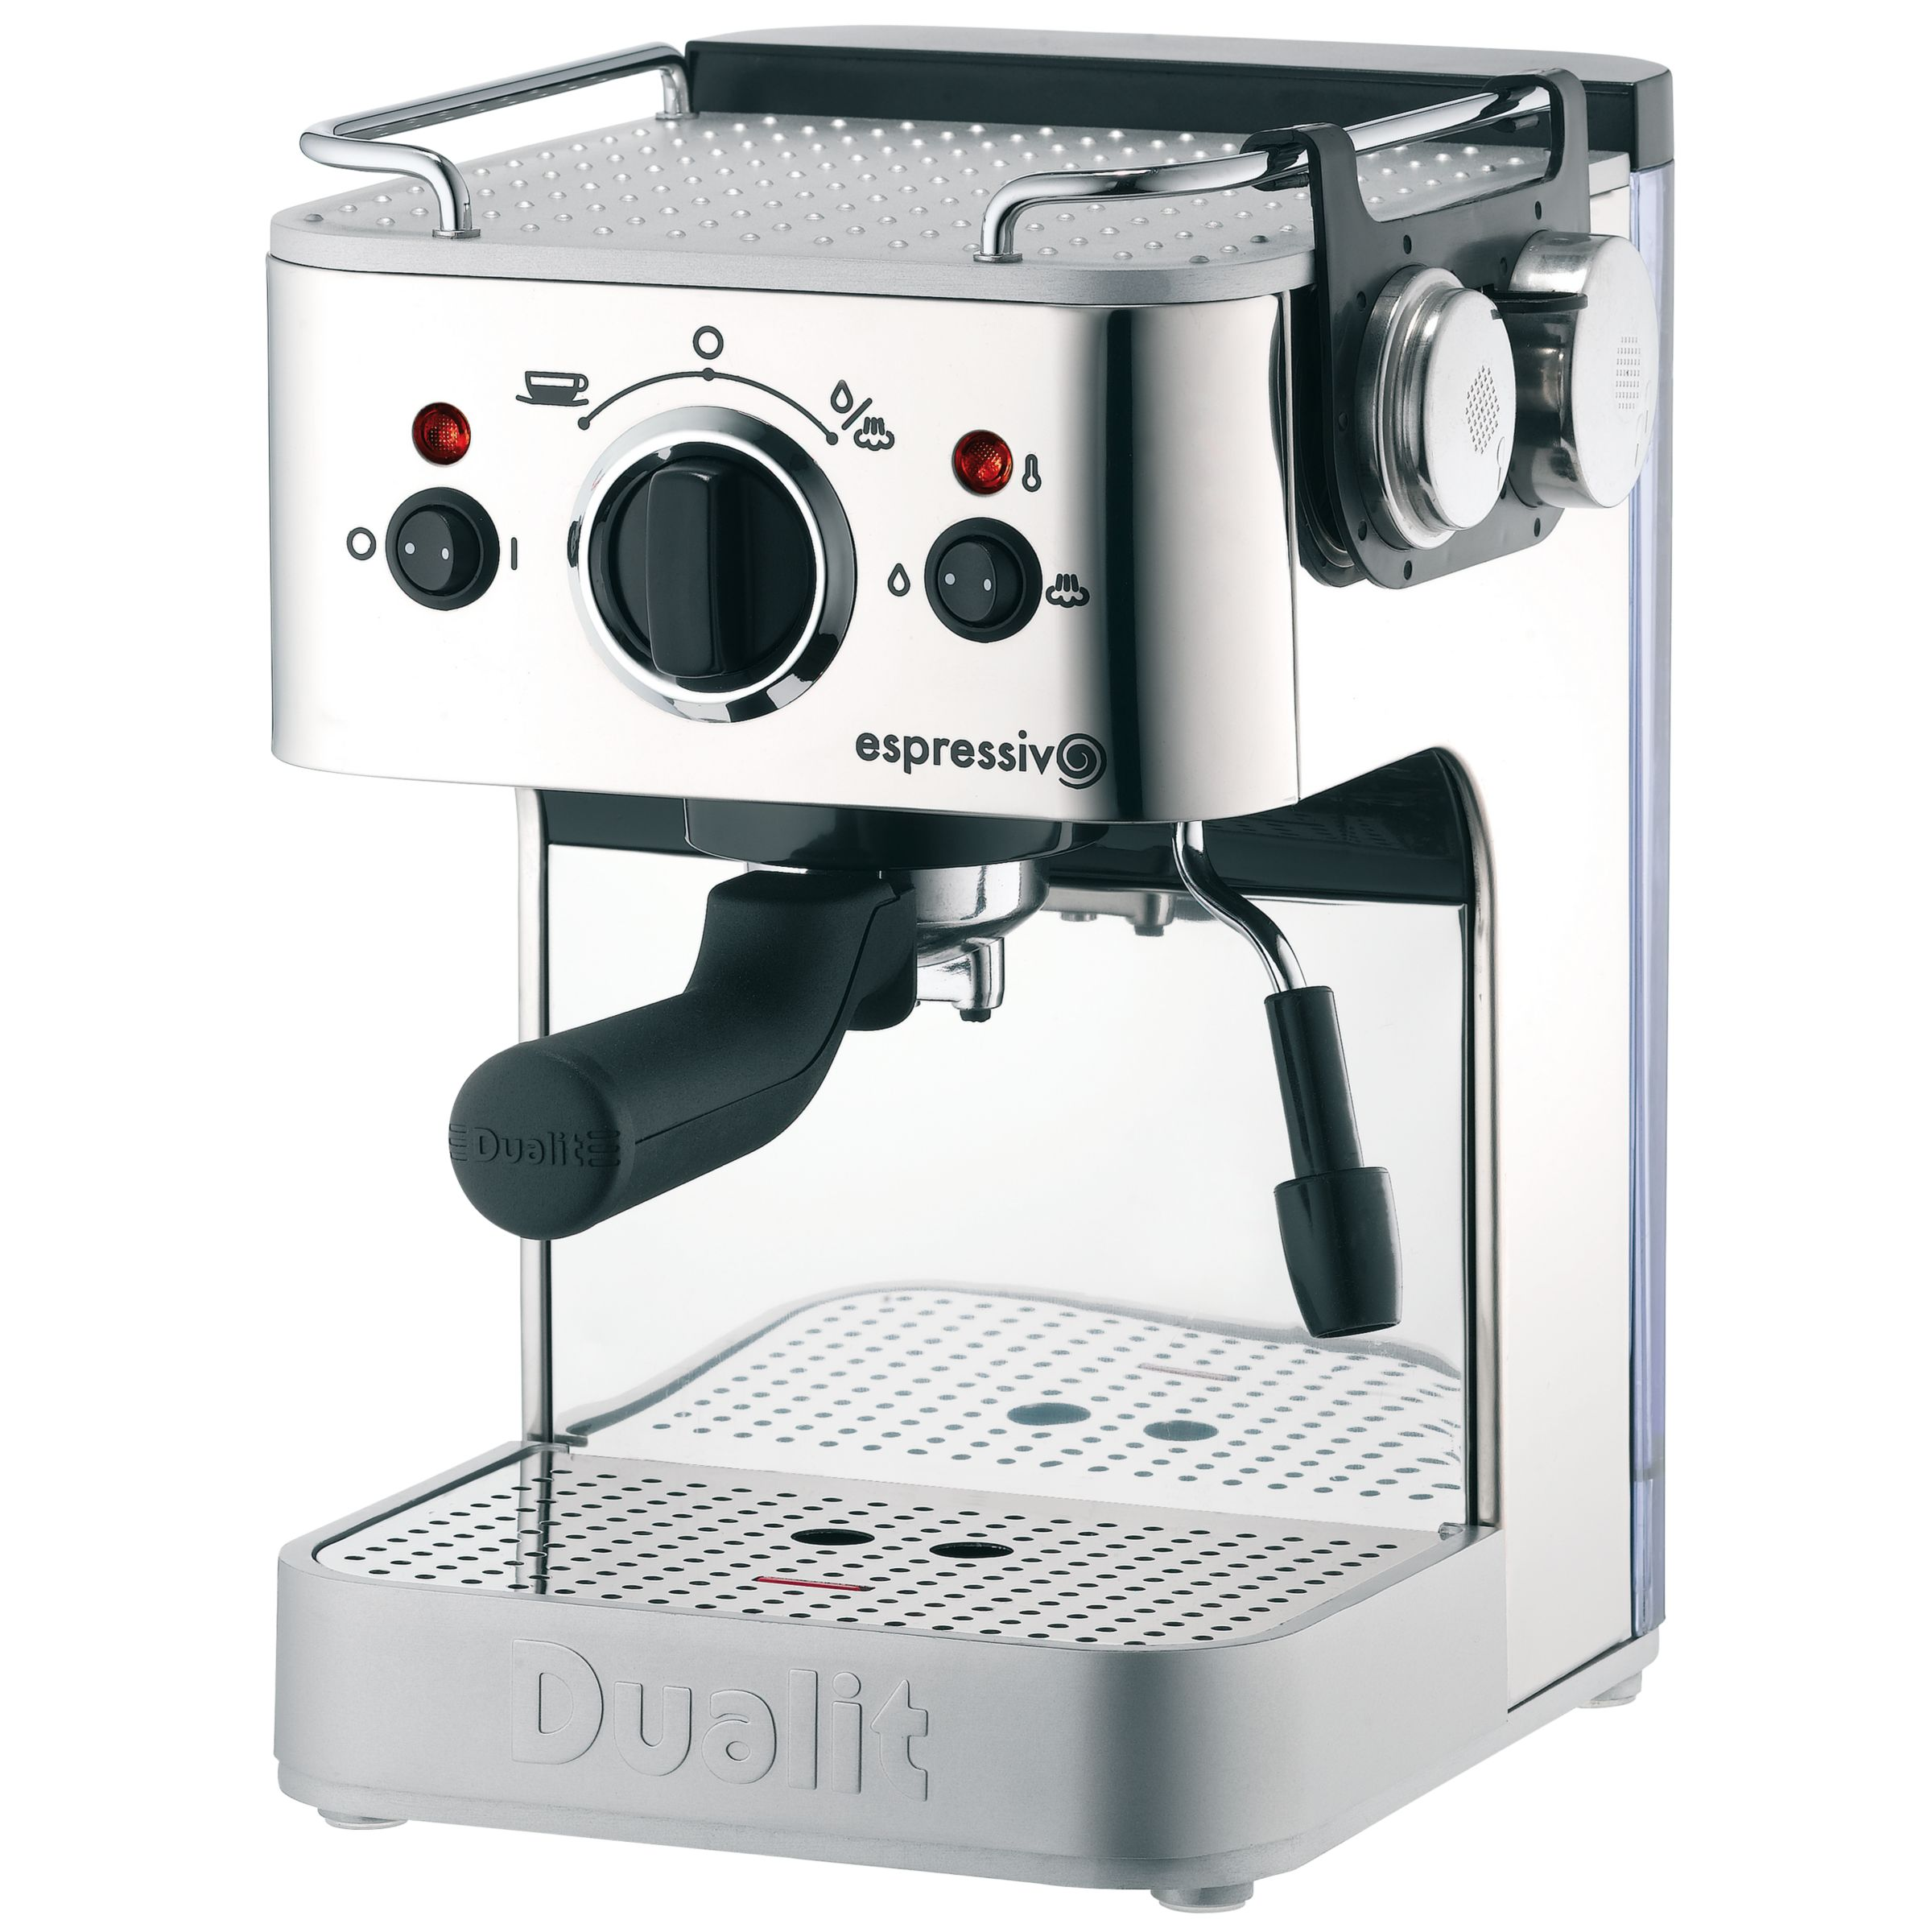 Dualit Espressivo 79000 Coffee Machine, Polished Steel with Frothing Jug at JohnLewis